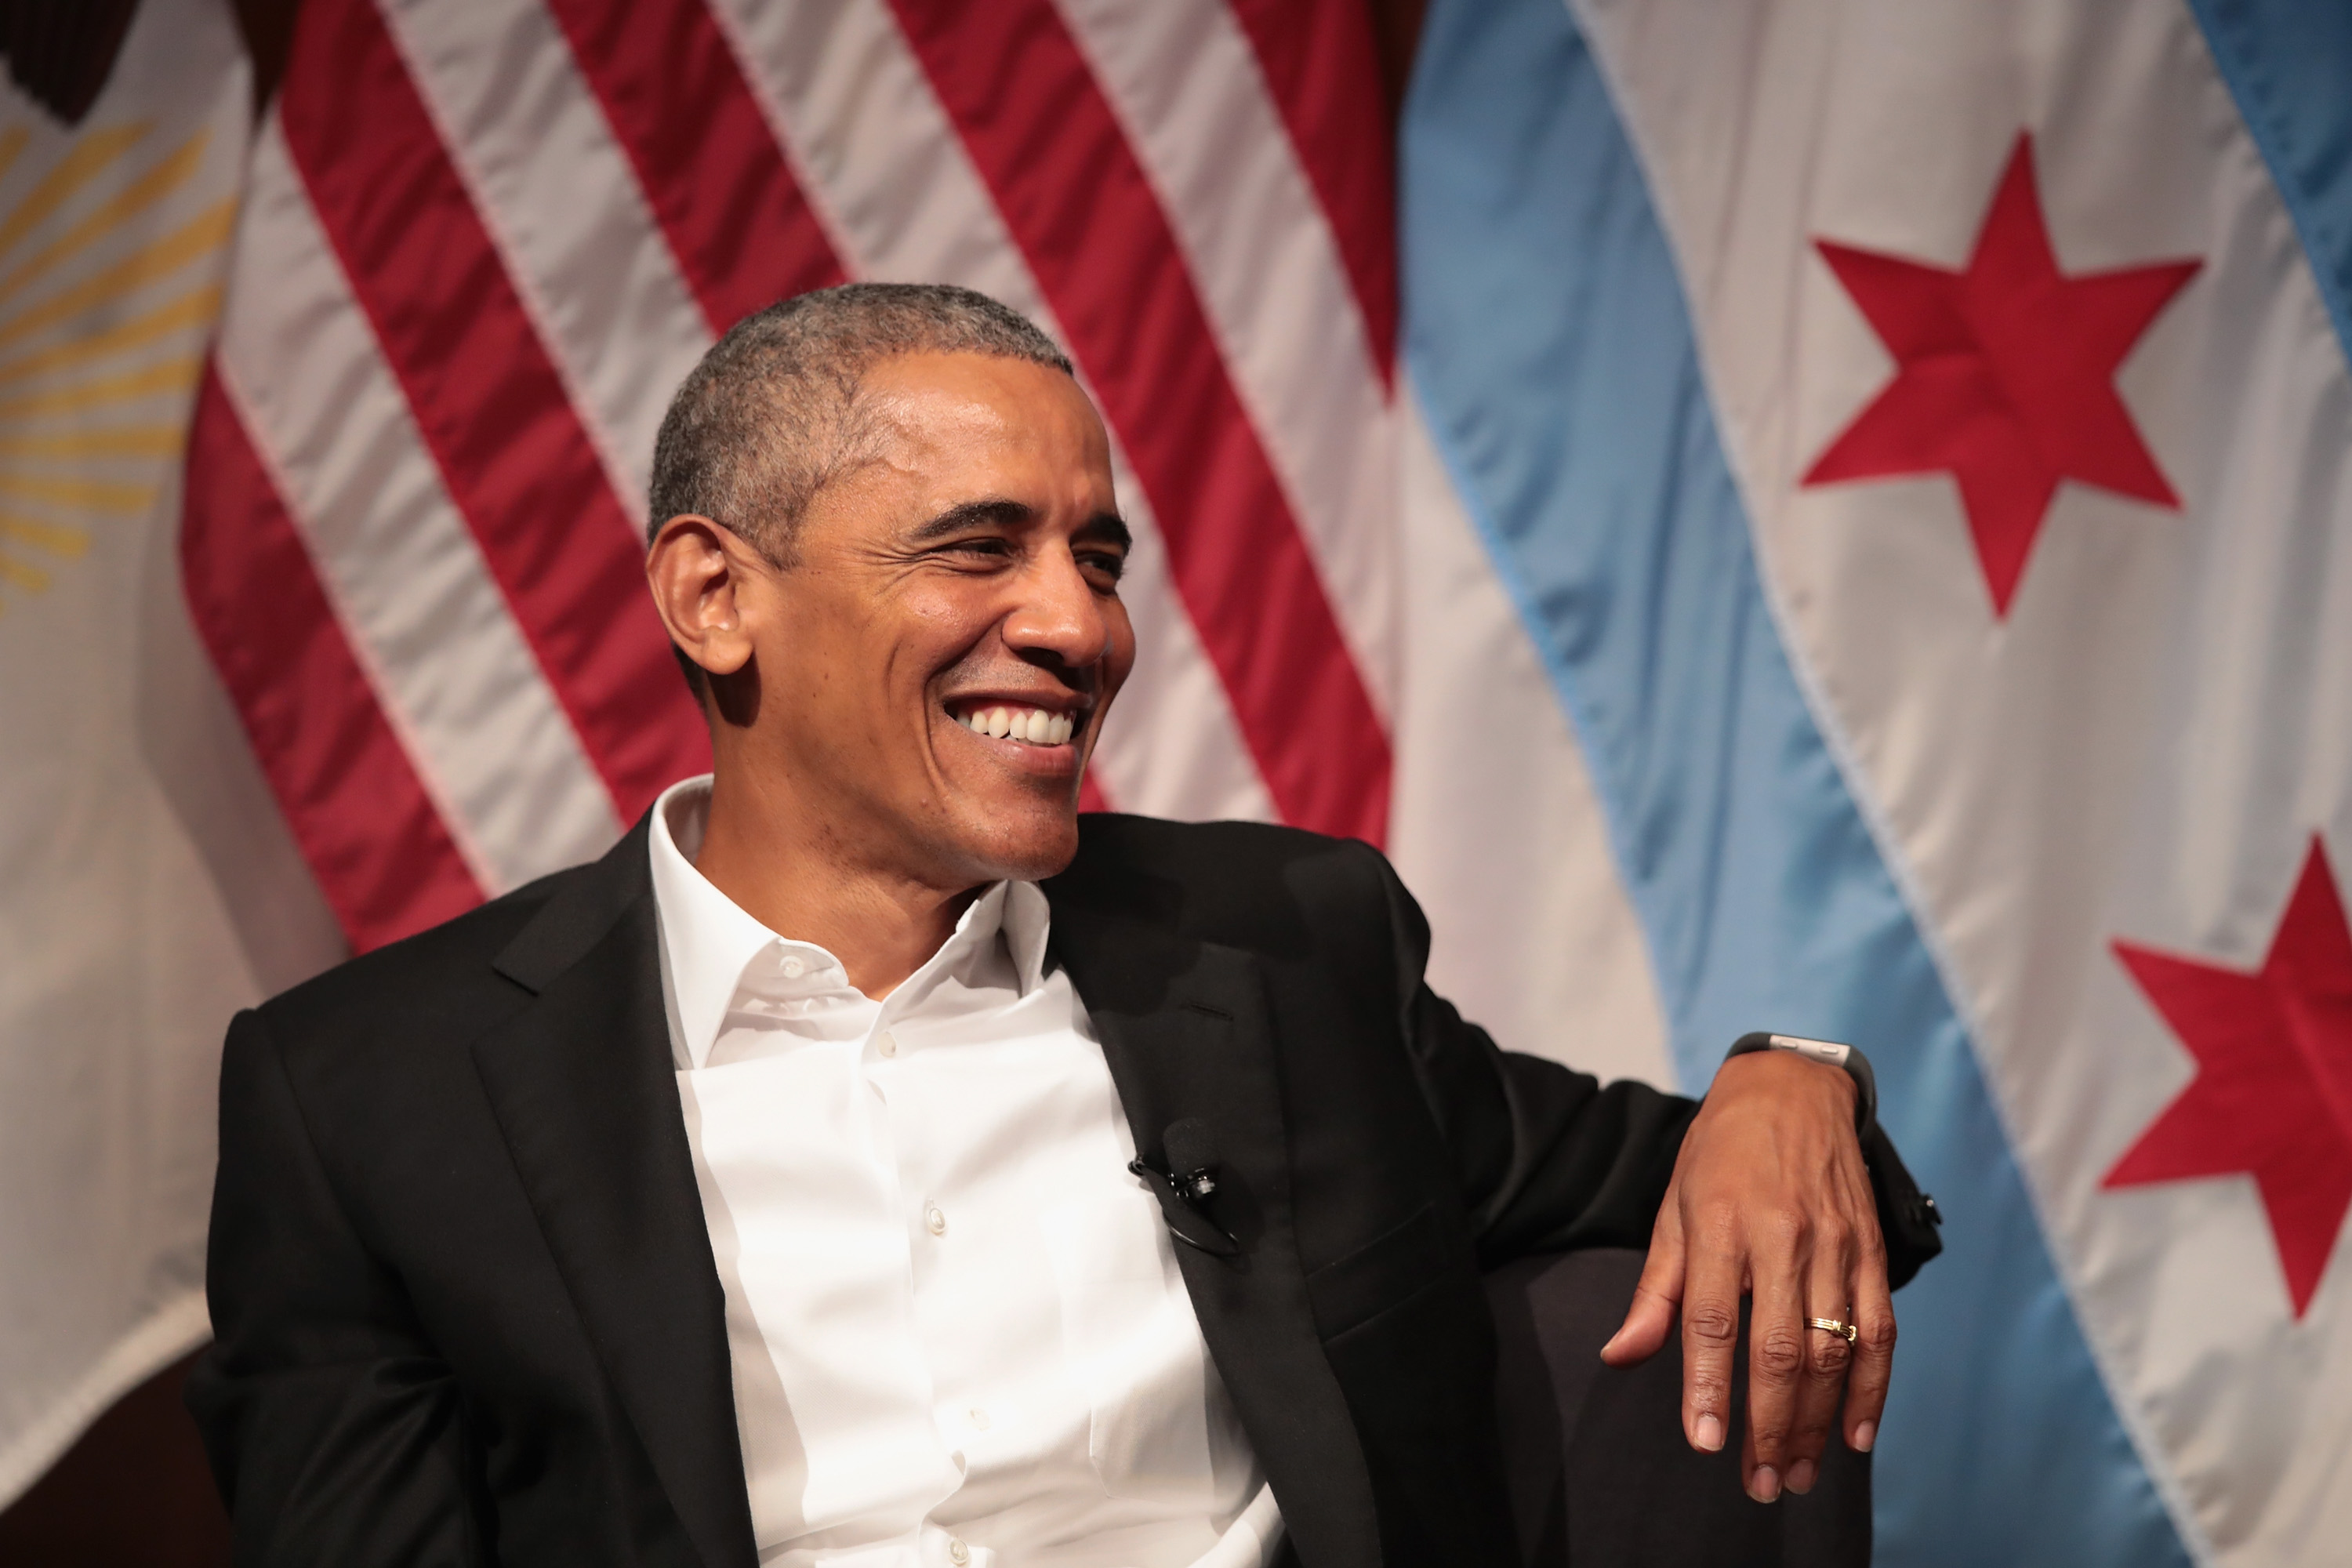 Former President Obama Speaks On Civic Engagement At The University Of Chicago